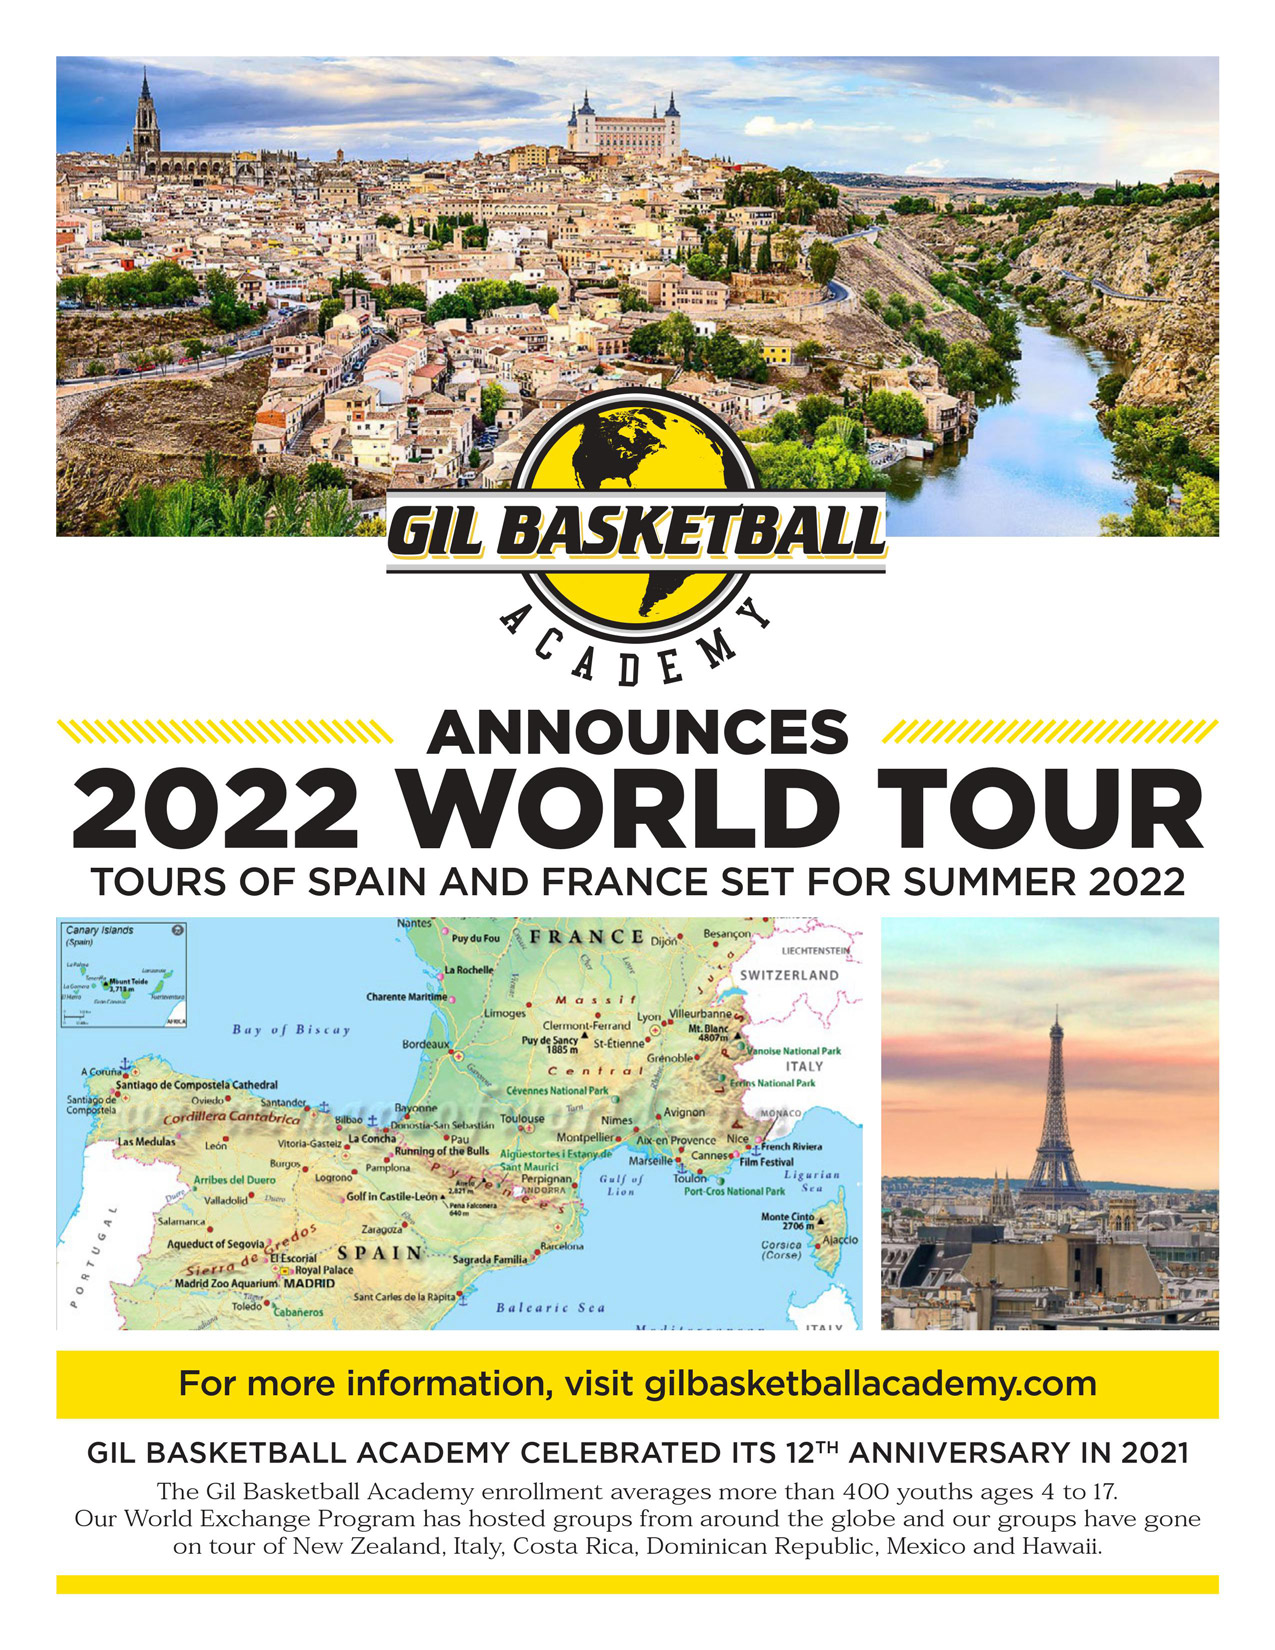 GBA 2022 World Tour Flyer to Spain and France